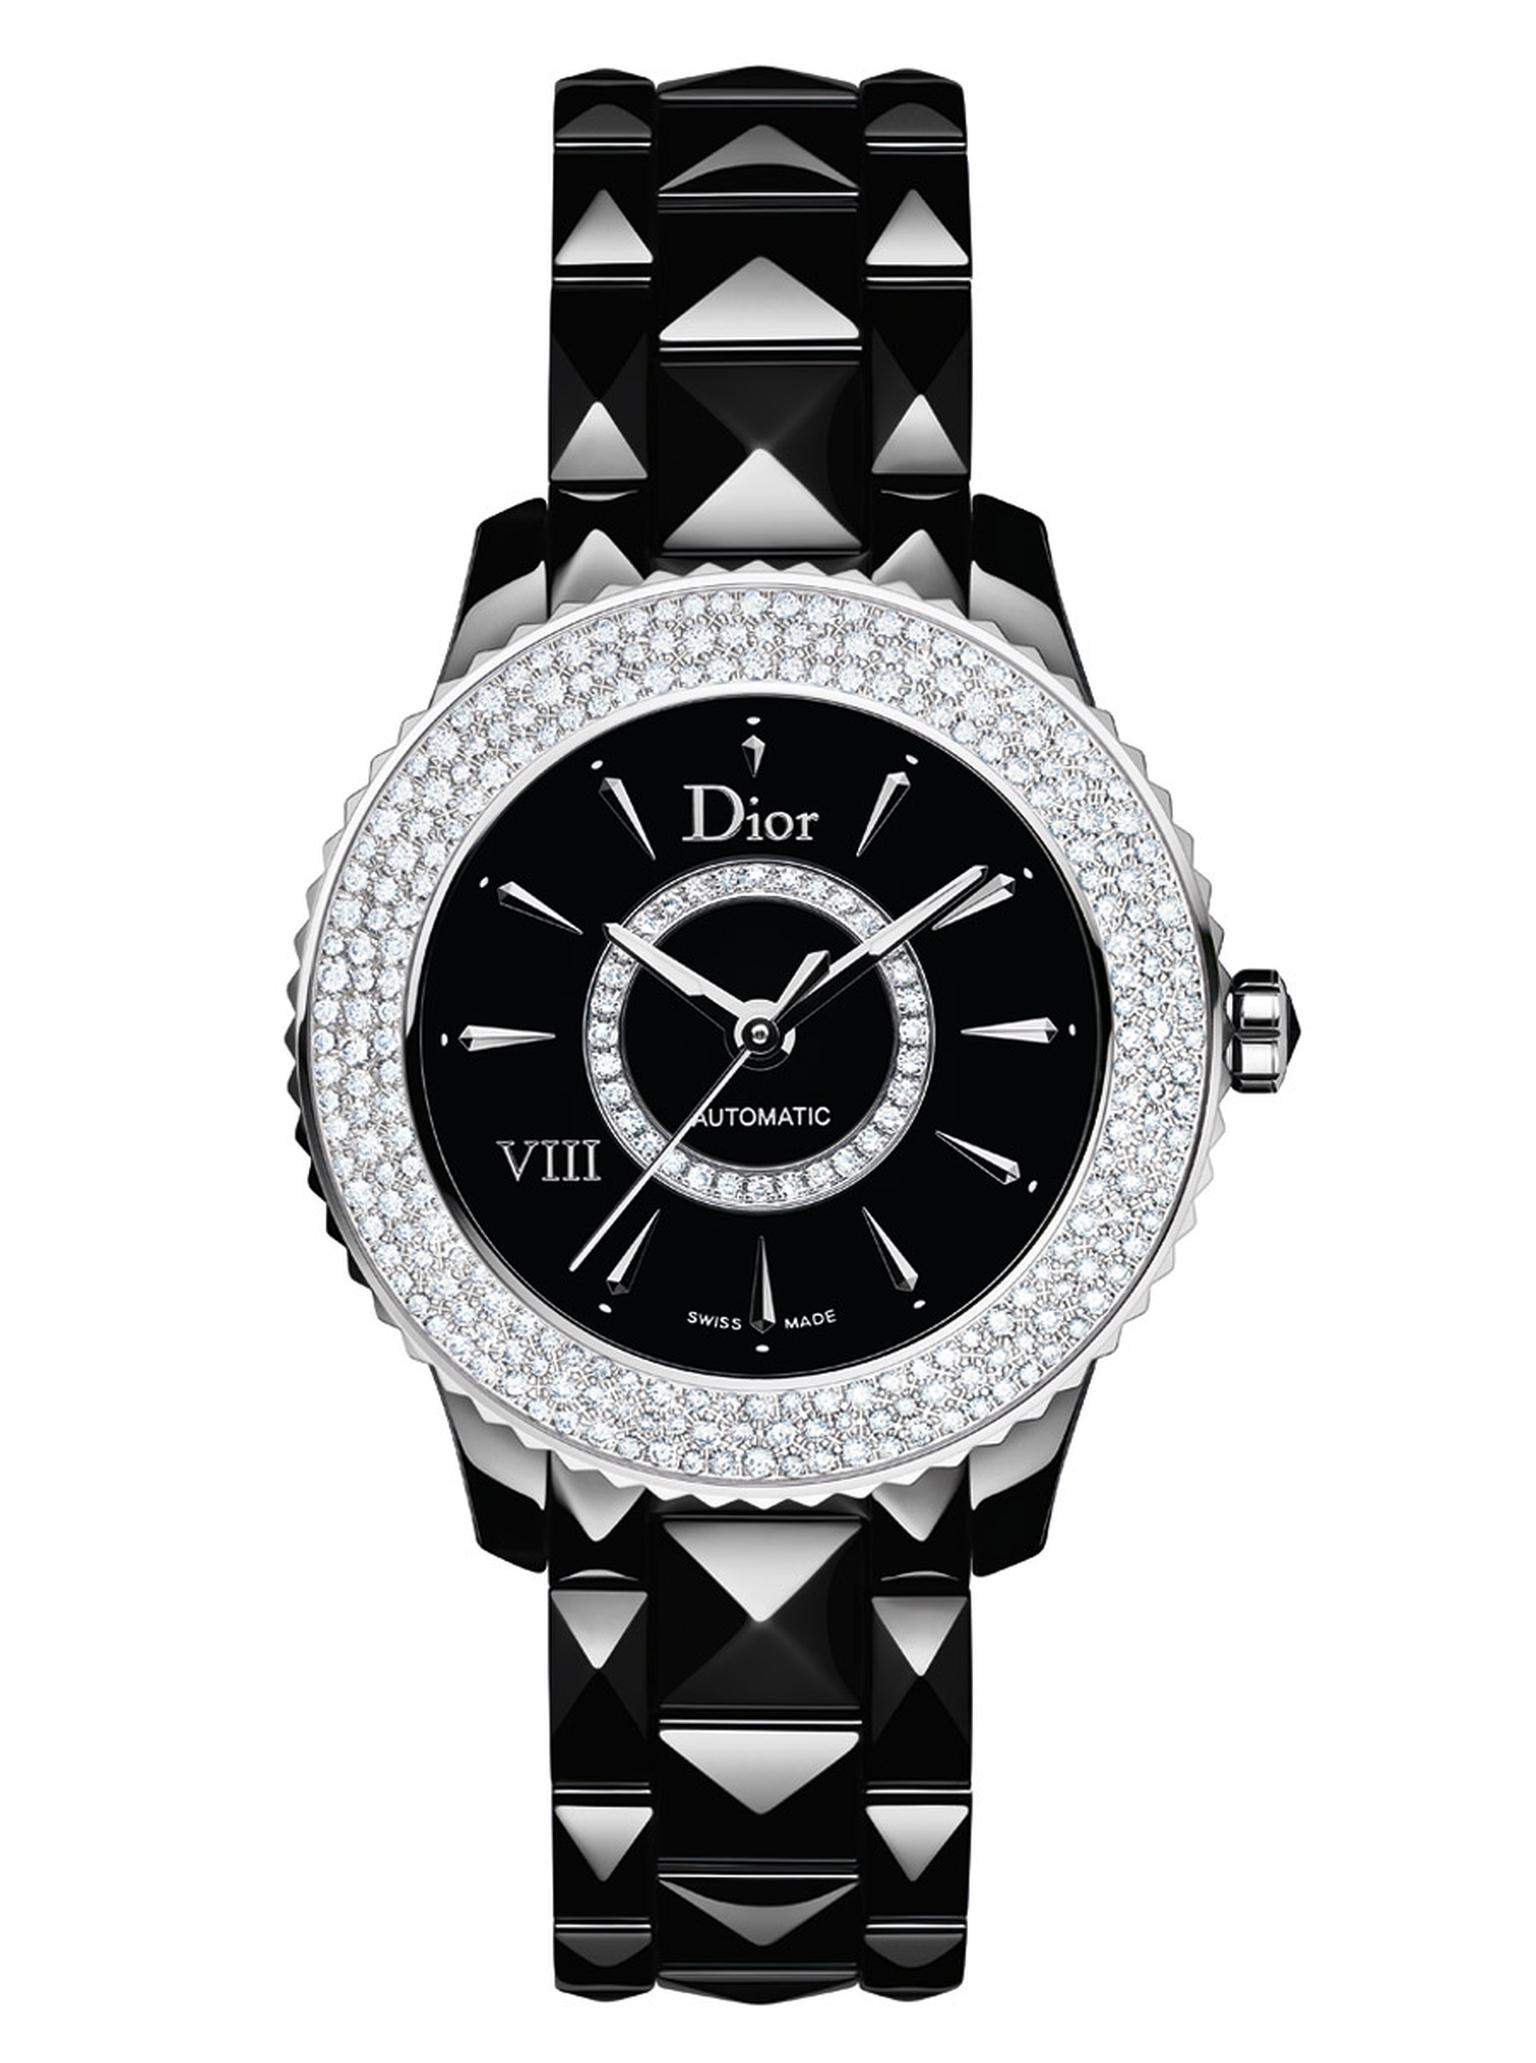 DIOR-VIII-BLACK-AUTO-DIAMOND-SNOW-SET-BEZEL-33mm